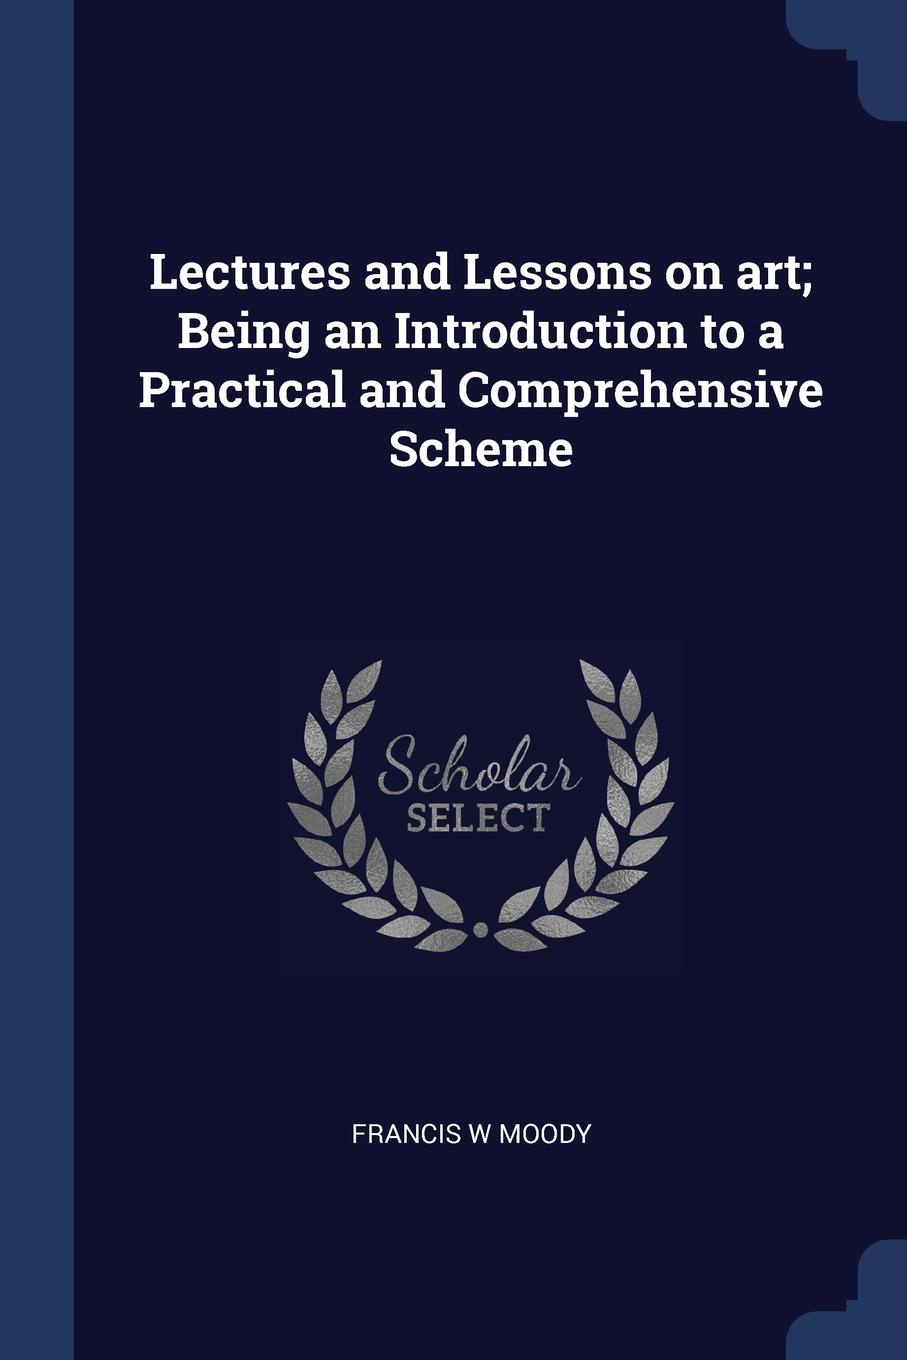 Lectures and Lessons on art; Being an Introduction to a Practical and Comprehensive Scheme. Francis W Moody